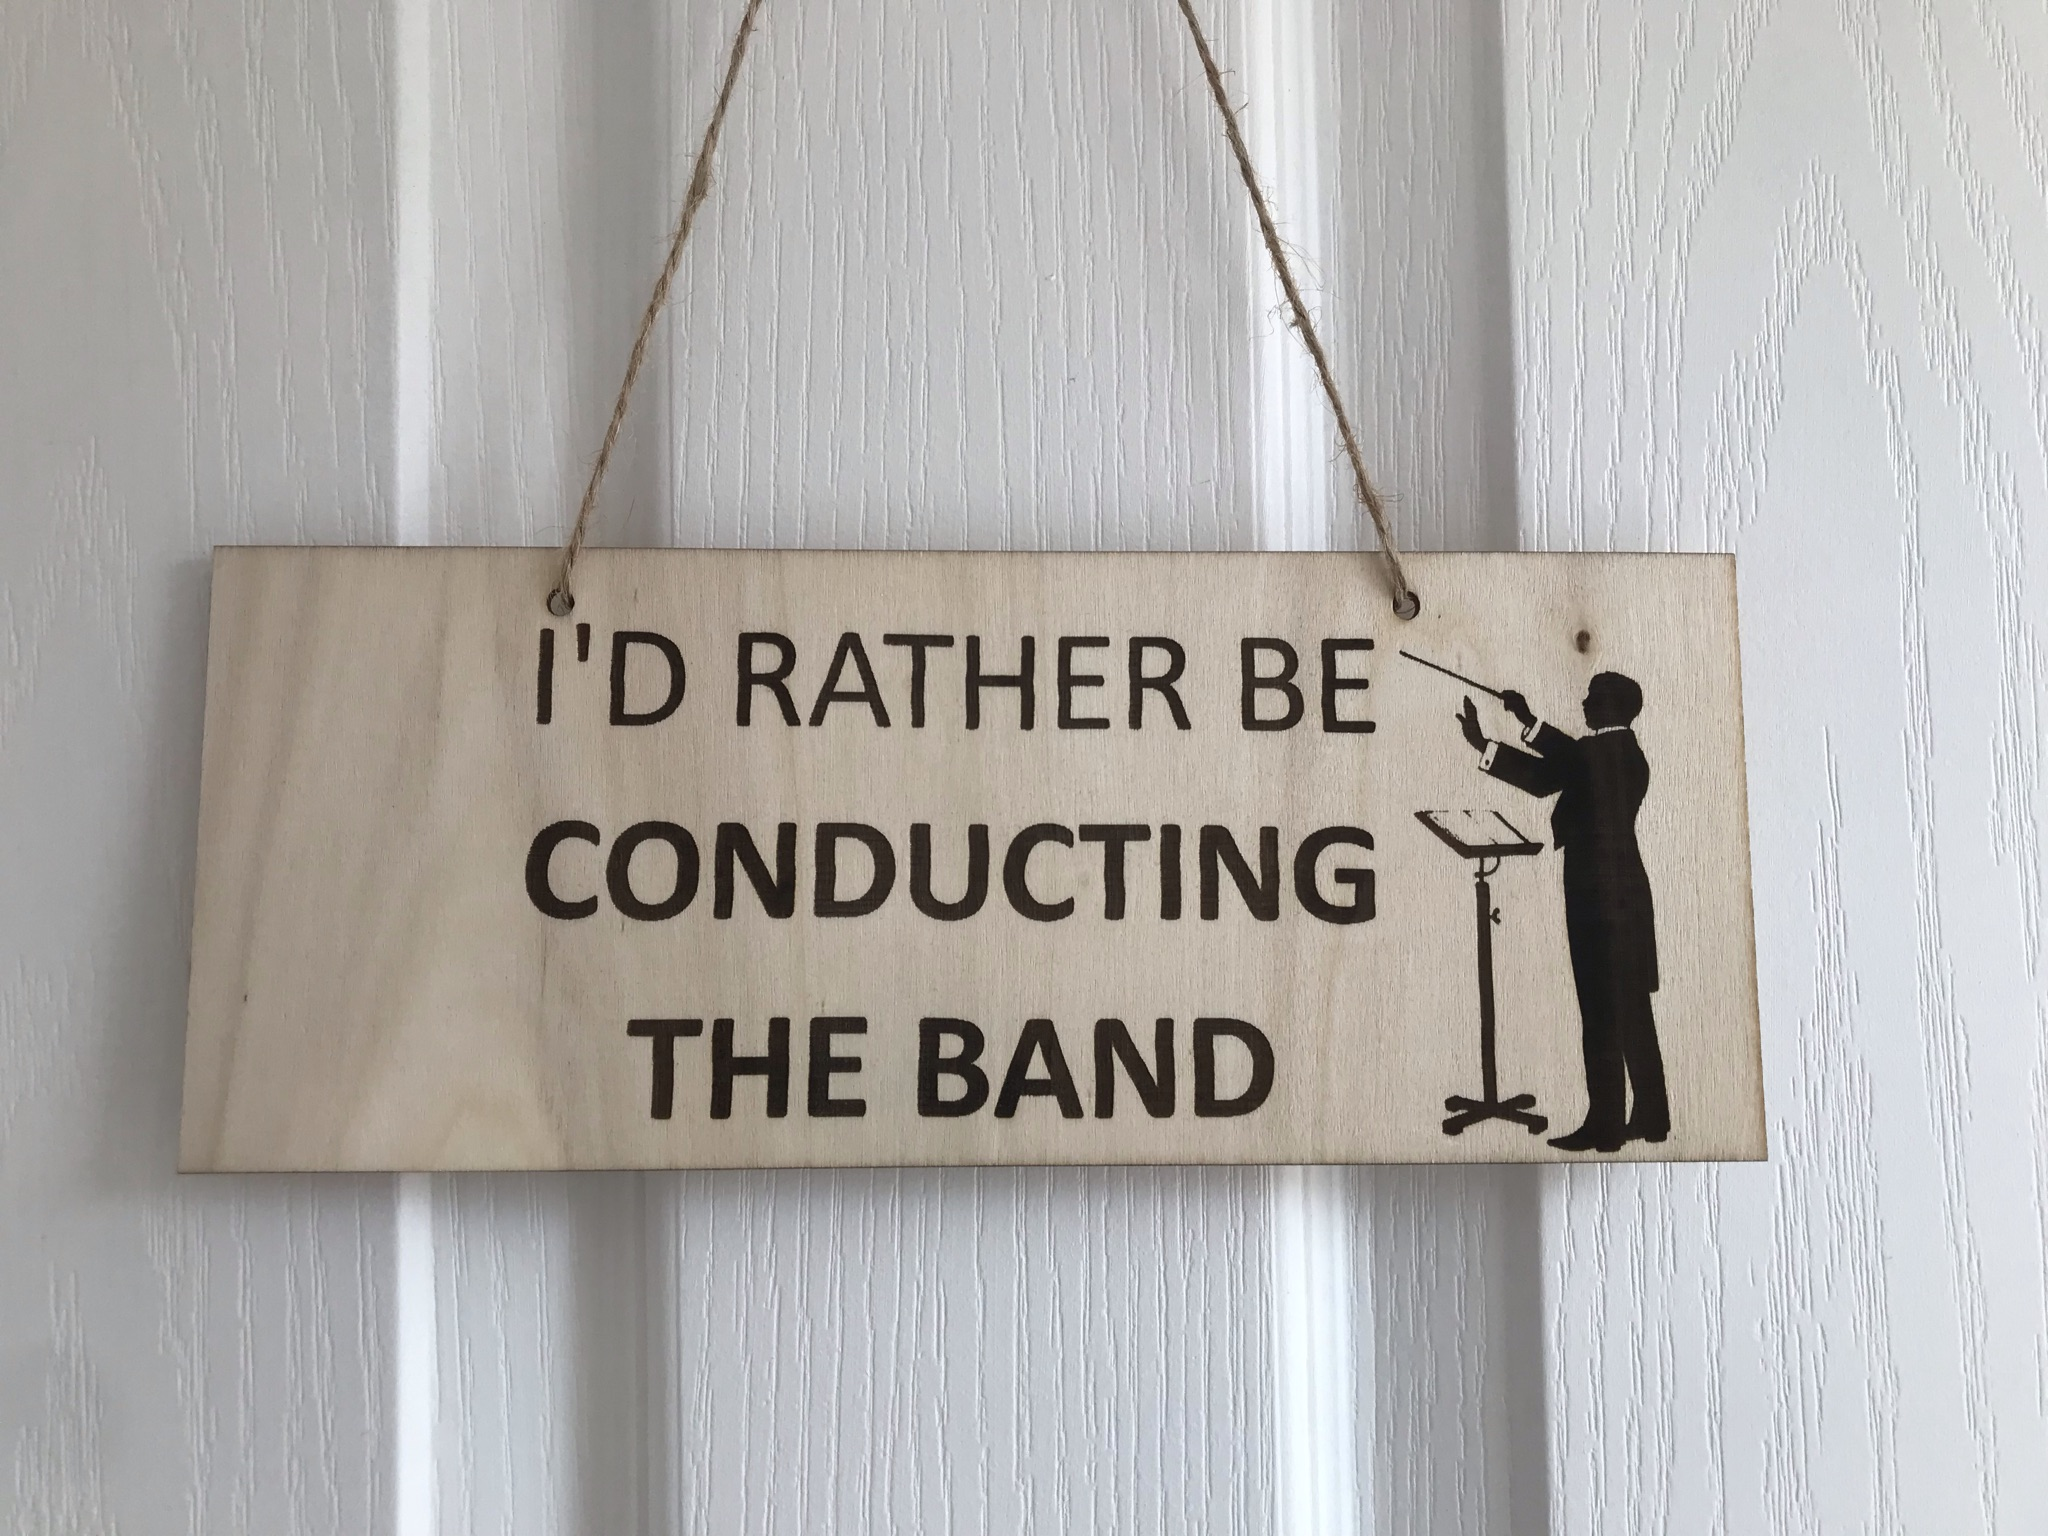 Rather be conducting the band